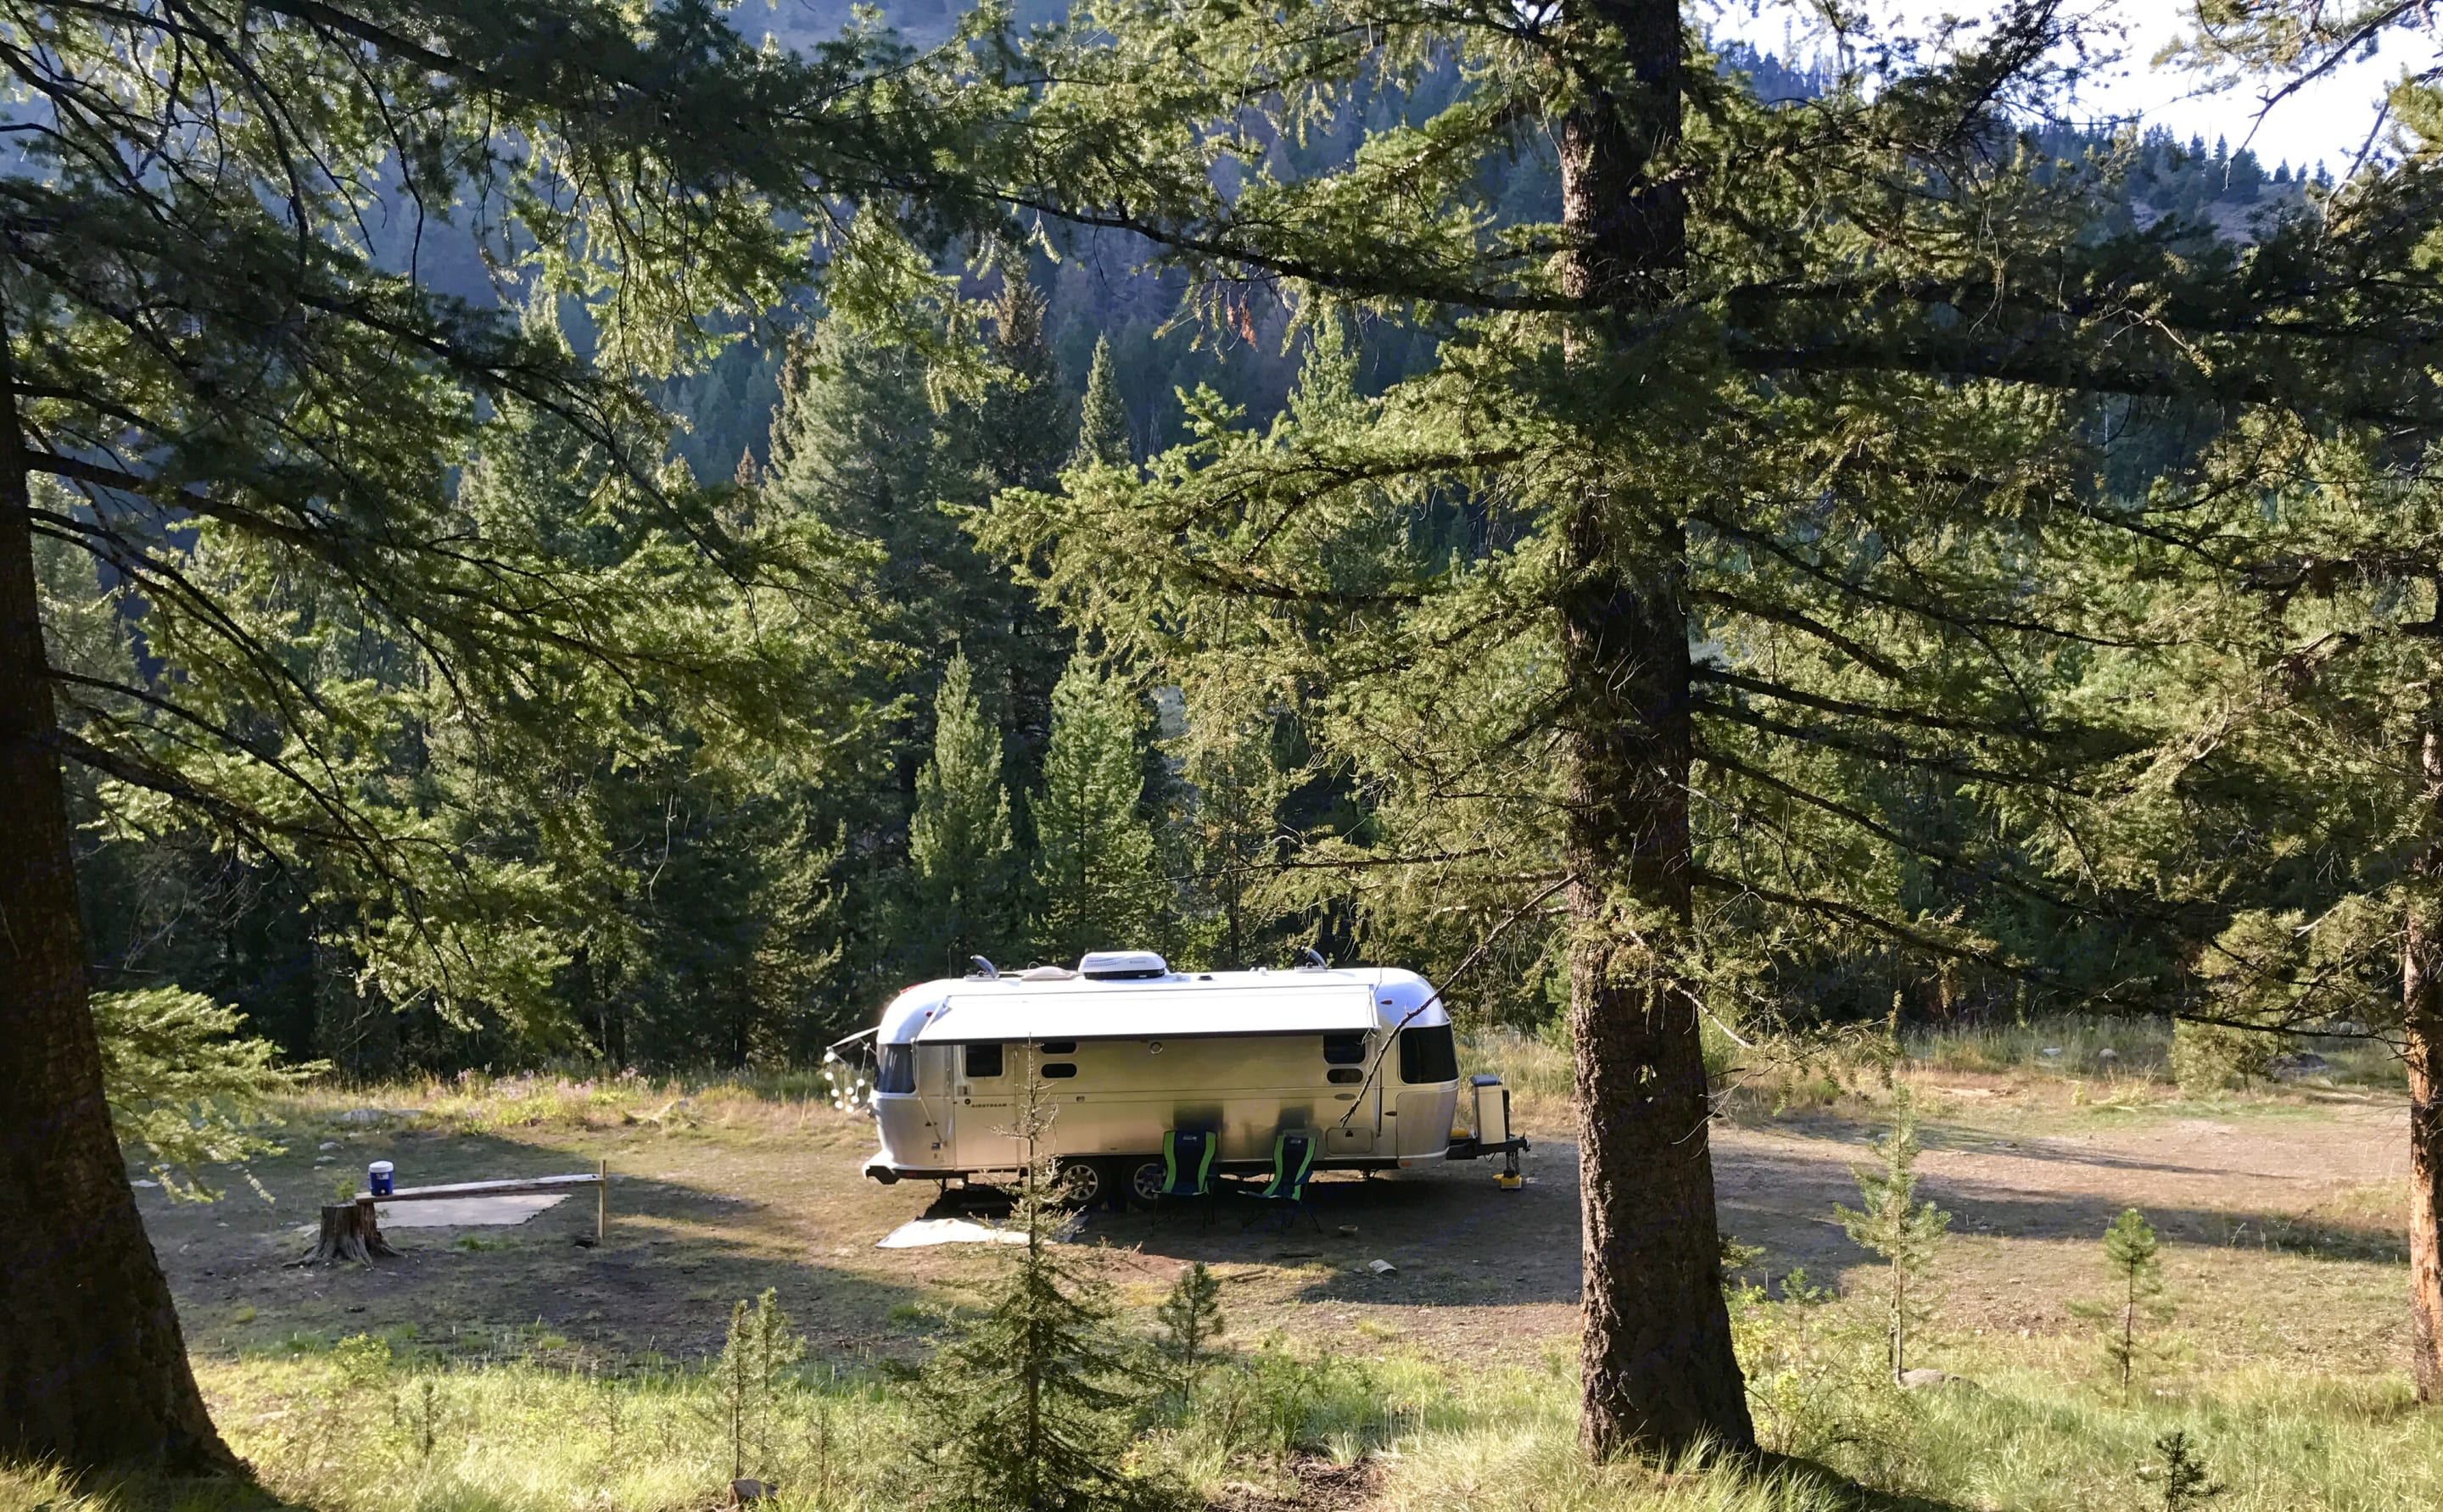 Awning extended for shade. Airstream Flying Cloud 2014